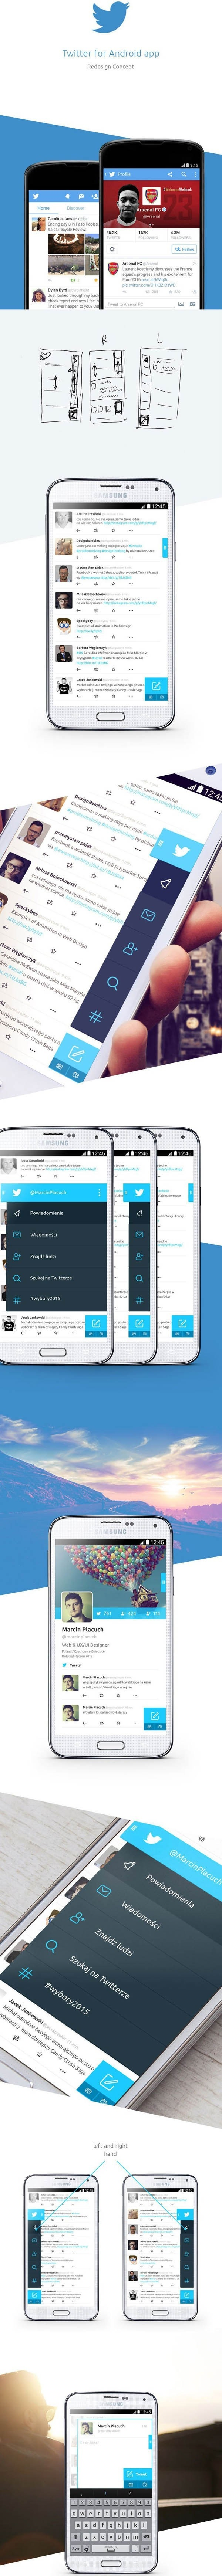 Twitter for Android – redesign concept by Marcin Placuch